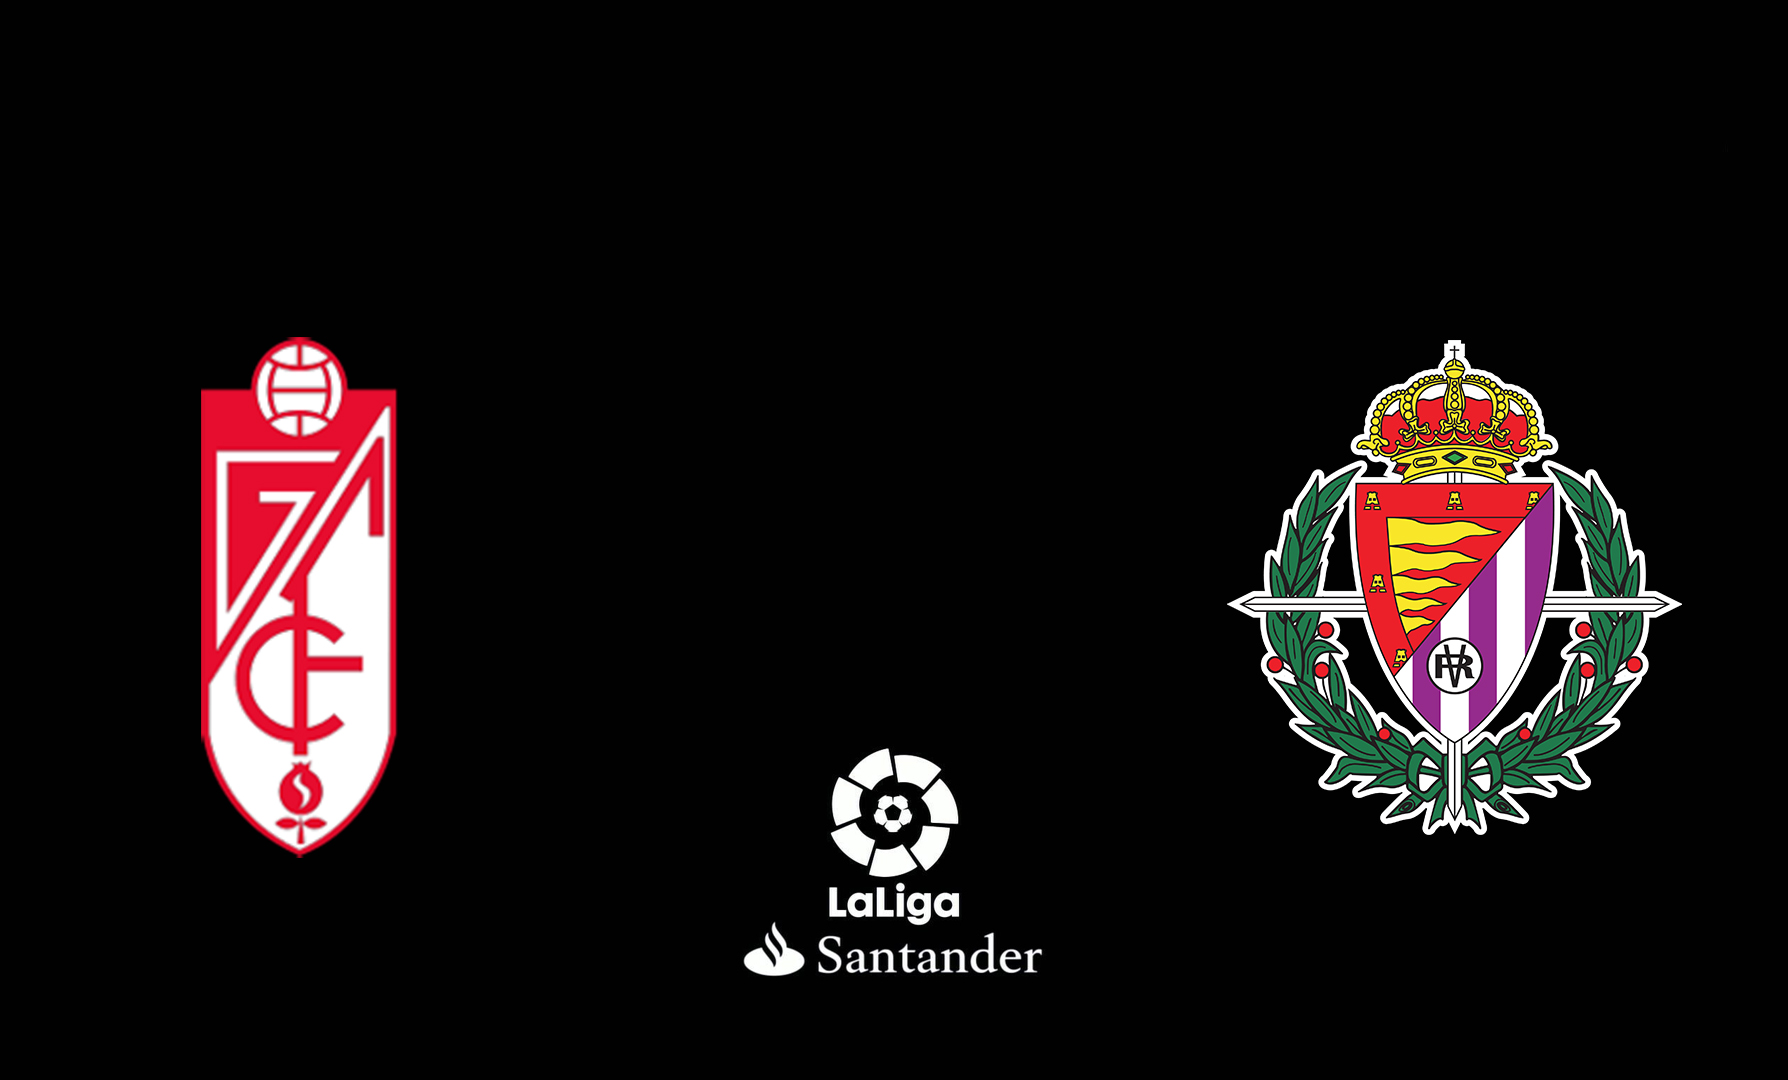 soi-keo-ca-cuoc-bong-da-ngay-9-2-Granada-vs-Valladolid-do-it-thang-do-nhieu-b9 1